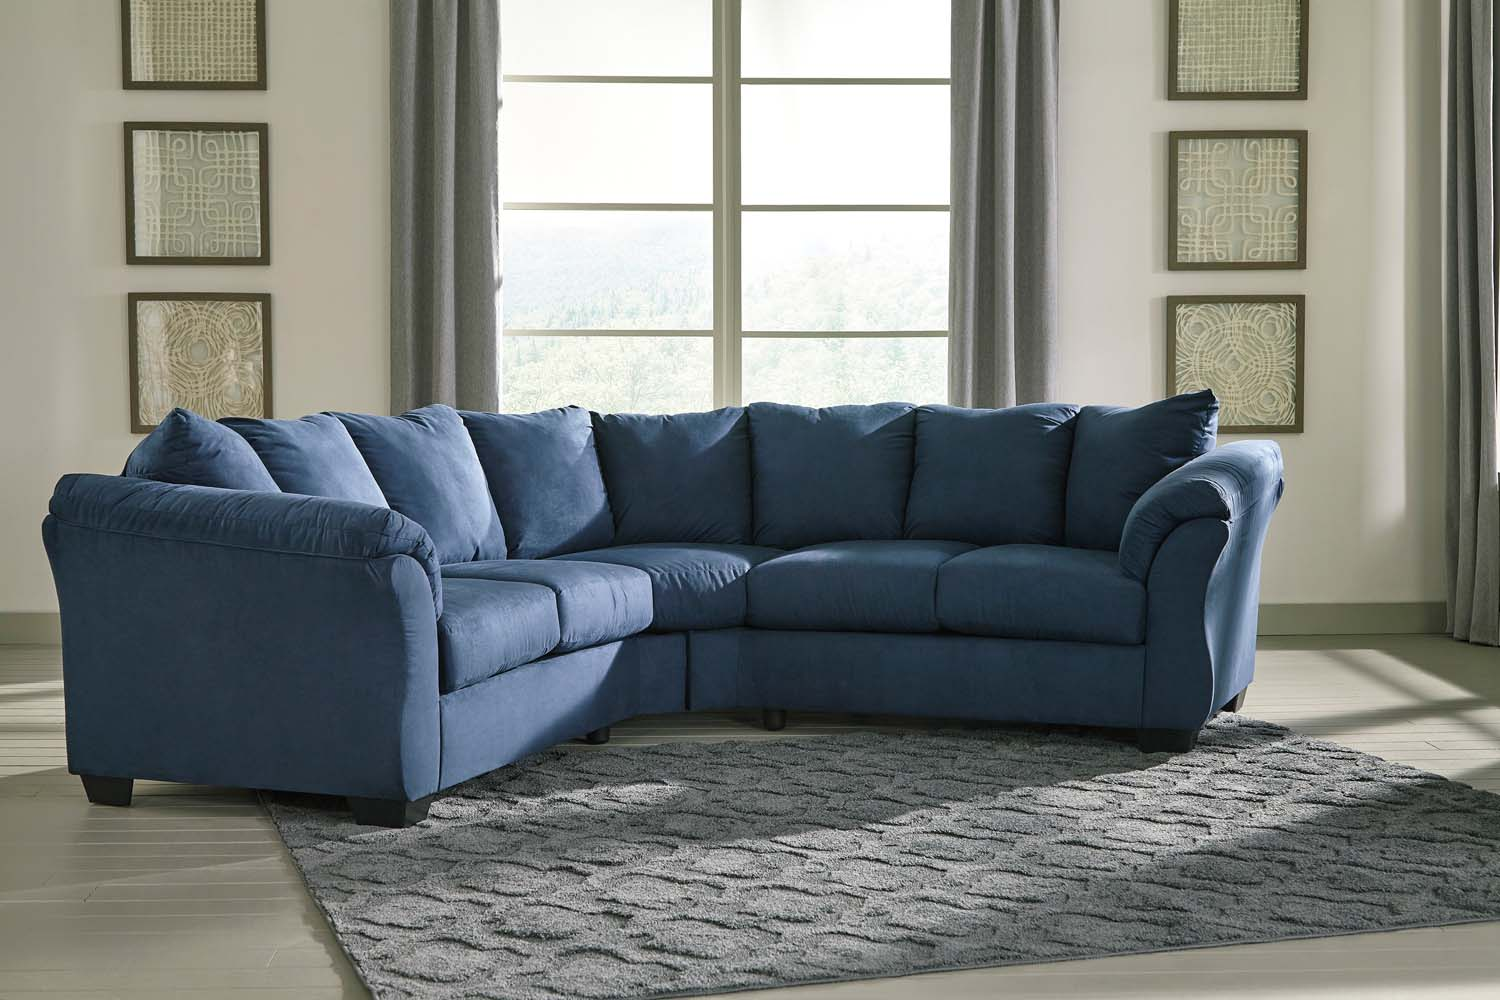 blue fl sofa natuzzi siena canada 75007s1 in by ashley furniture kissimmee darcy 2 piece sectional